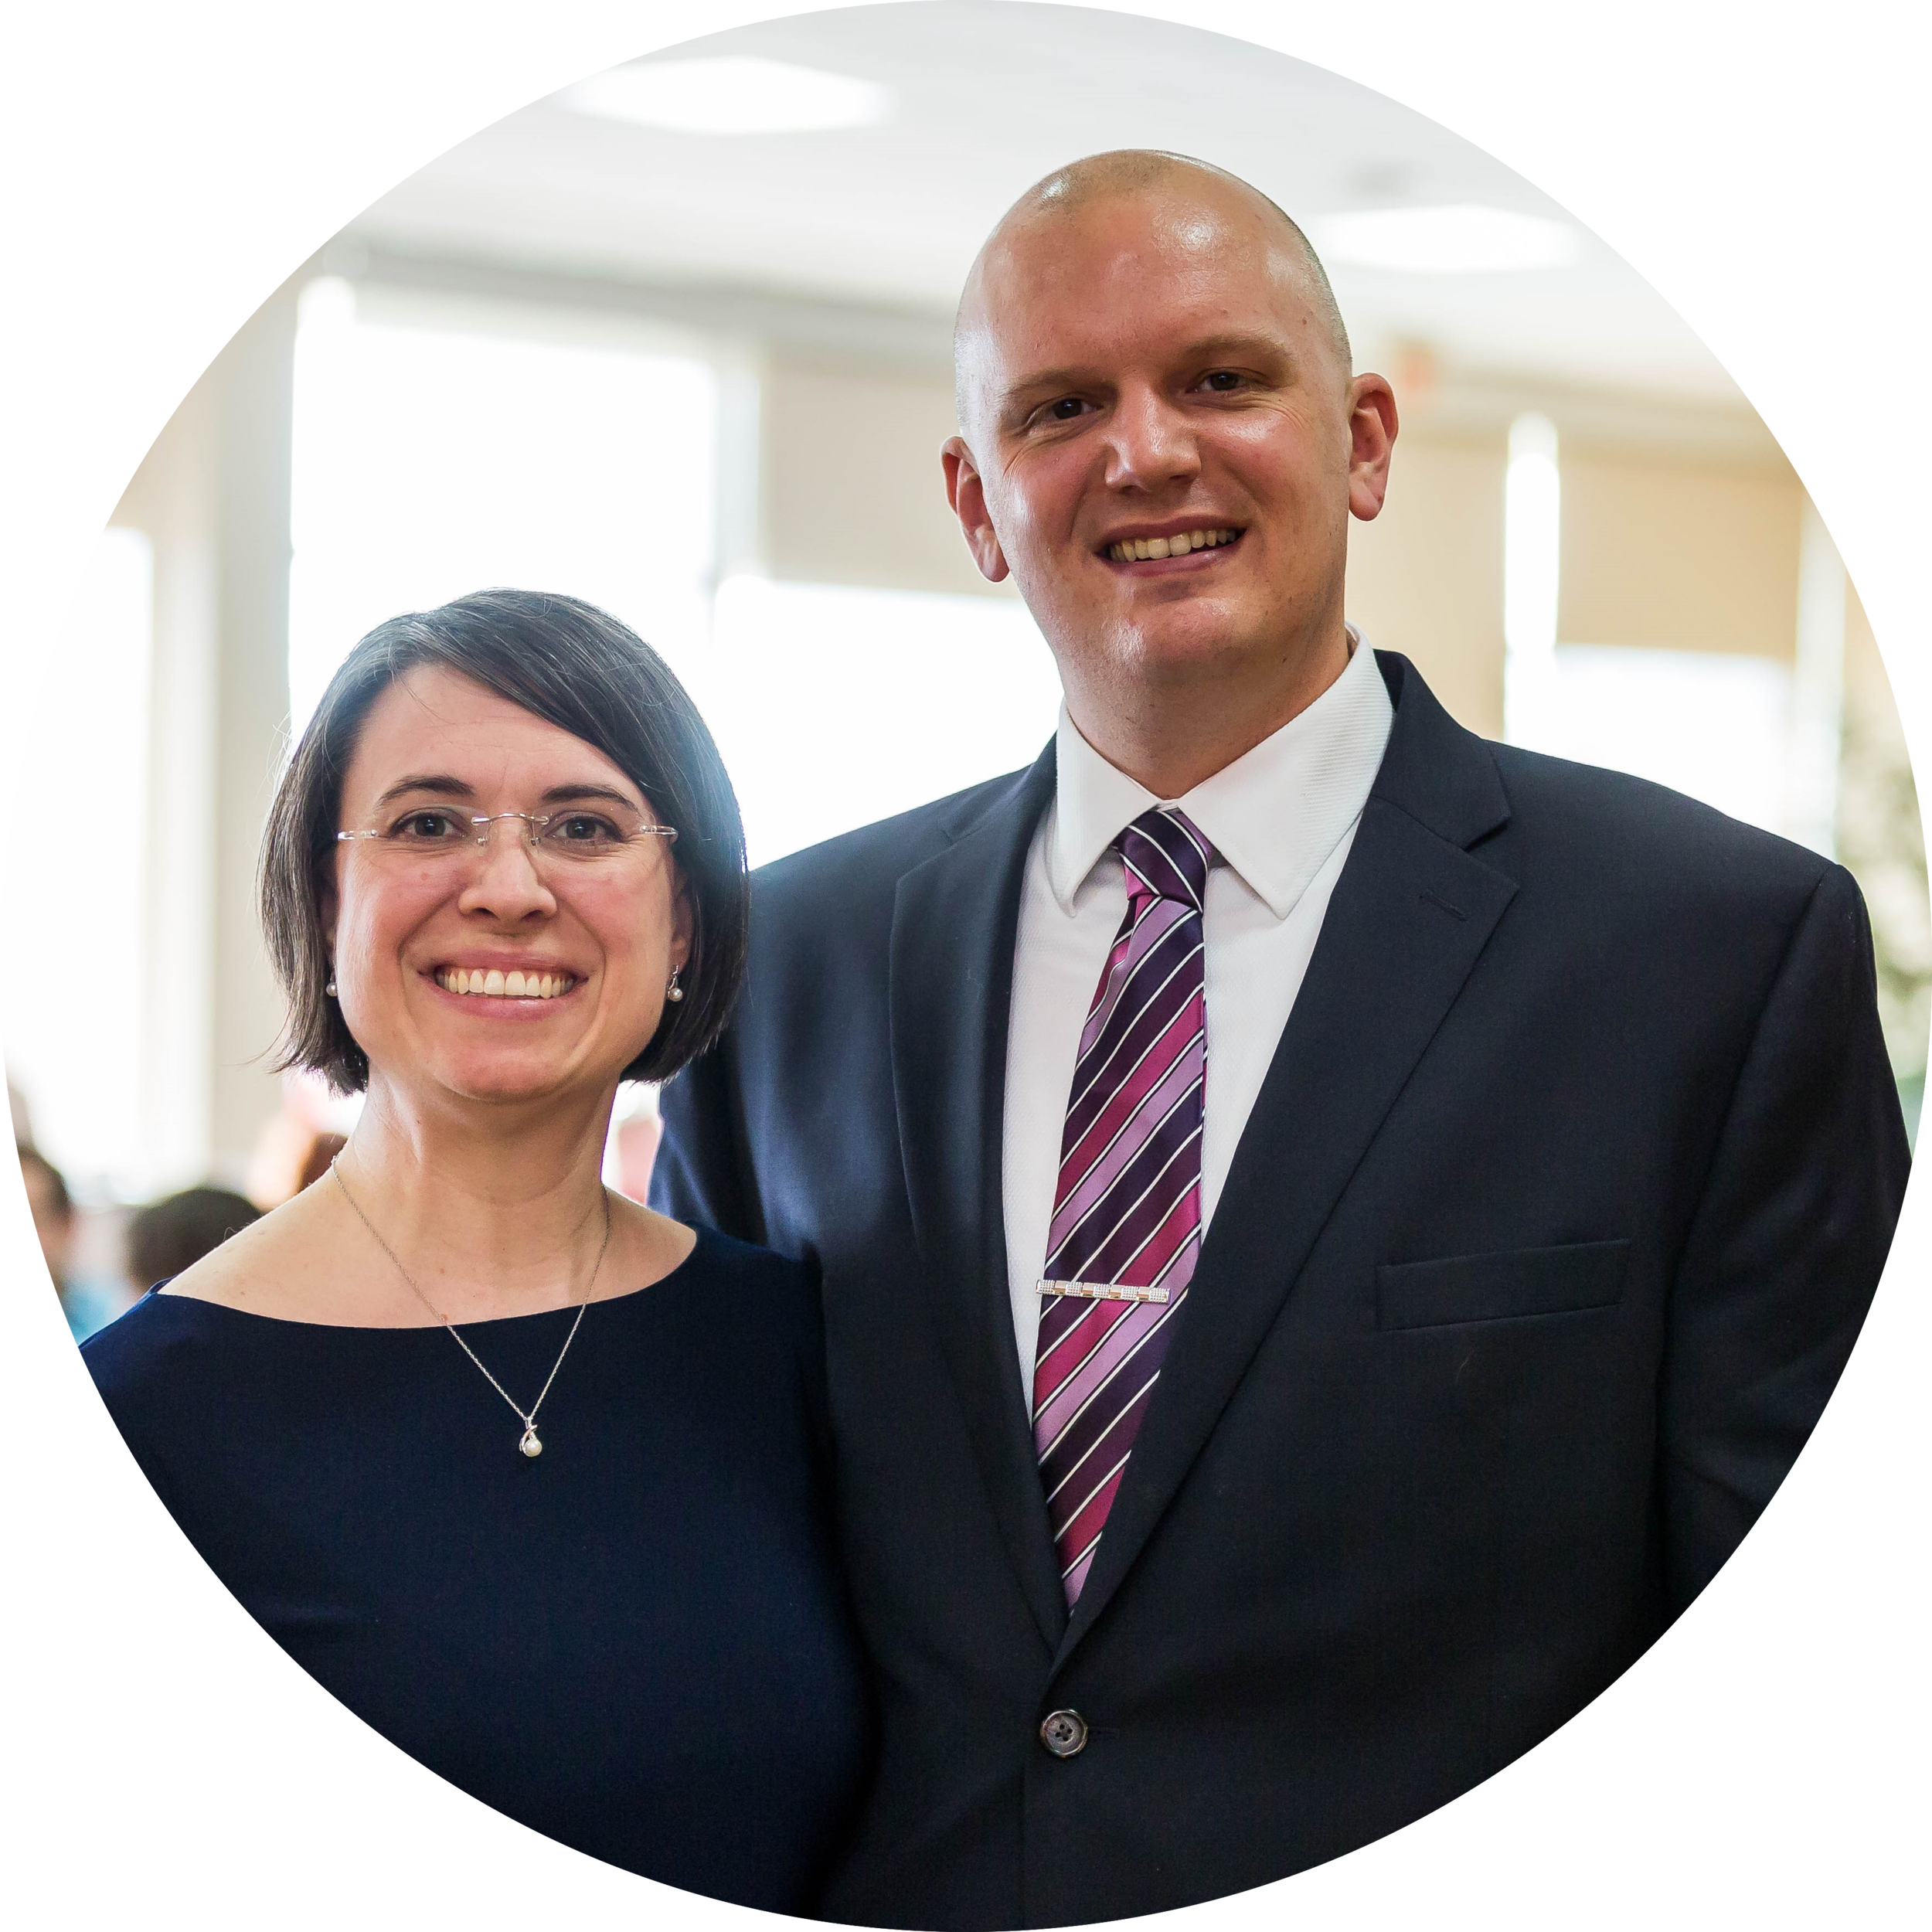 """""""Parish group has been a great chance to connect with new friends and to deepen existing relationships. We feel more connected to the church community by being able to pray for others in our community and knowing that they are praying for us, too."""" - Ted and Sara Ball"""